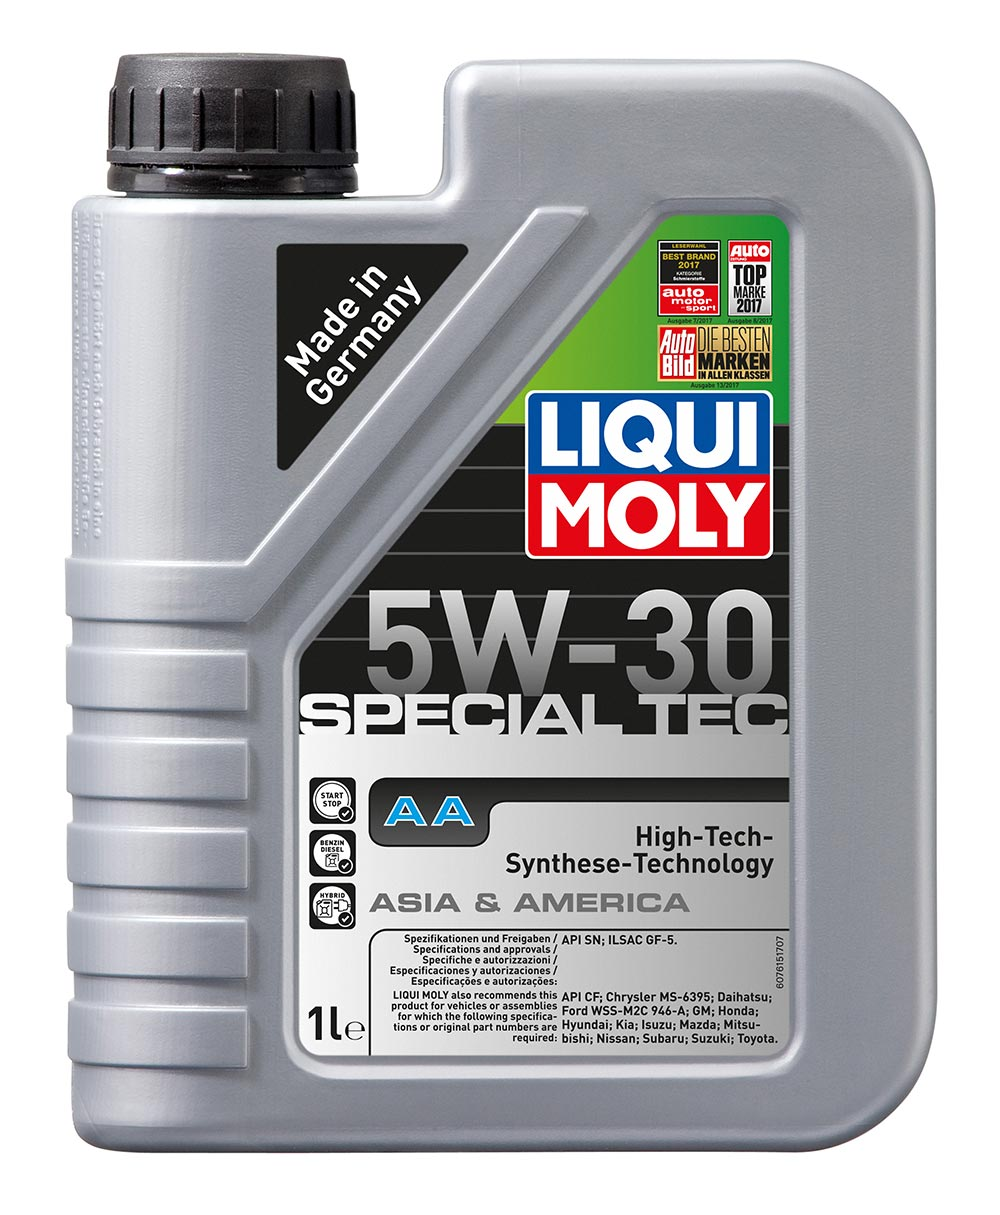 Масло моторное LIQUI MOLY Leichtlauf Special Tec AA 5W-30 (1л)